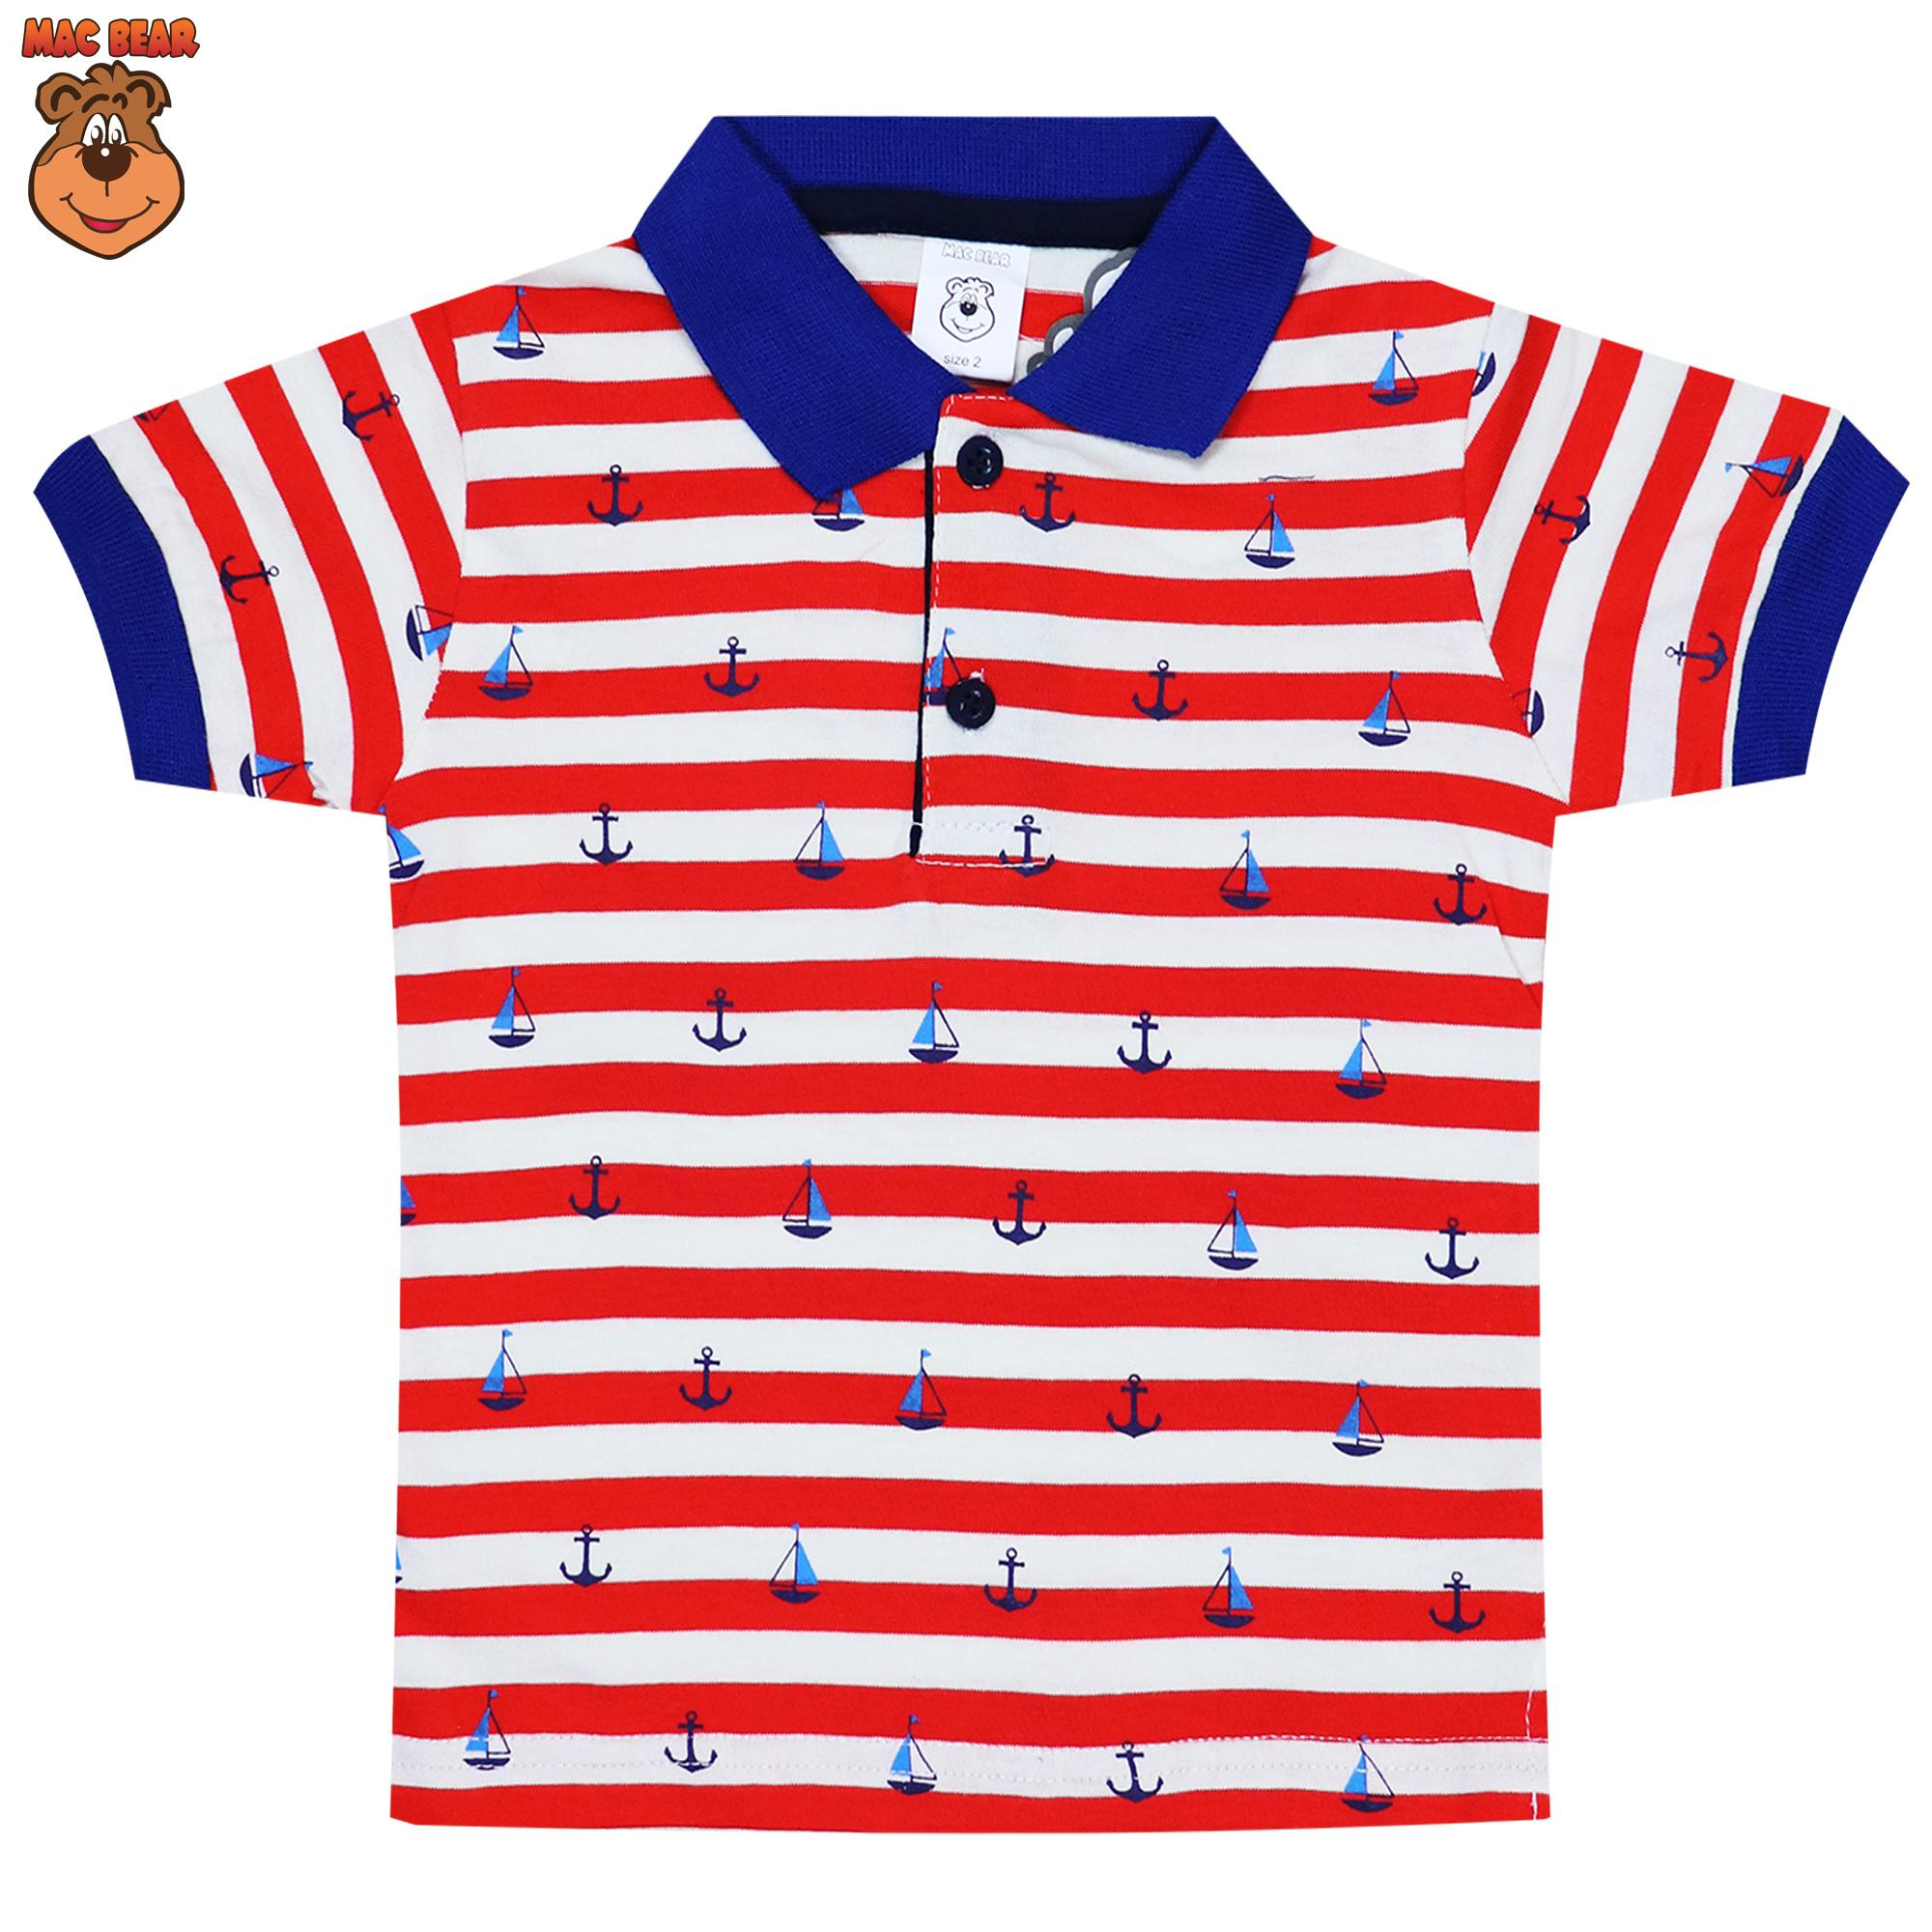 Macbear Baju Polo Anak Cool White Stripes On Red Size 5 Daftar De5 1805 Junior Kemeja Lengan Panjang 3 Stars Blue 8 Biru Kids Atasan Stripy Boat